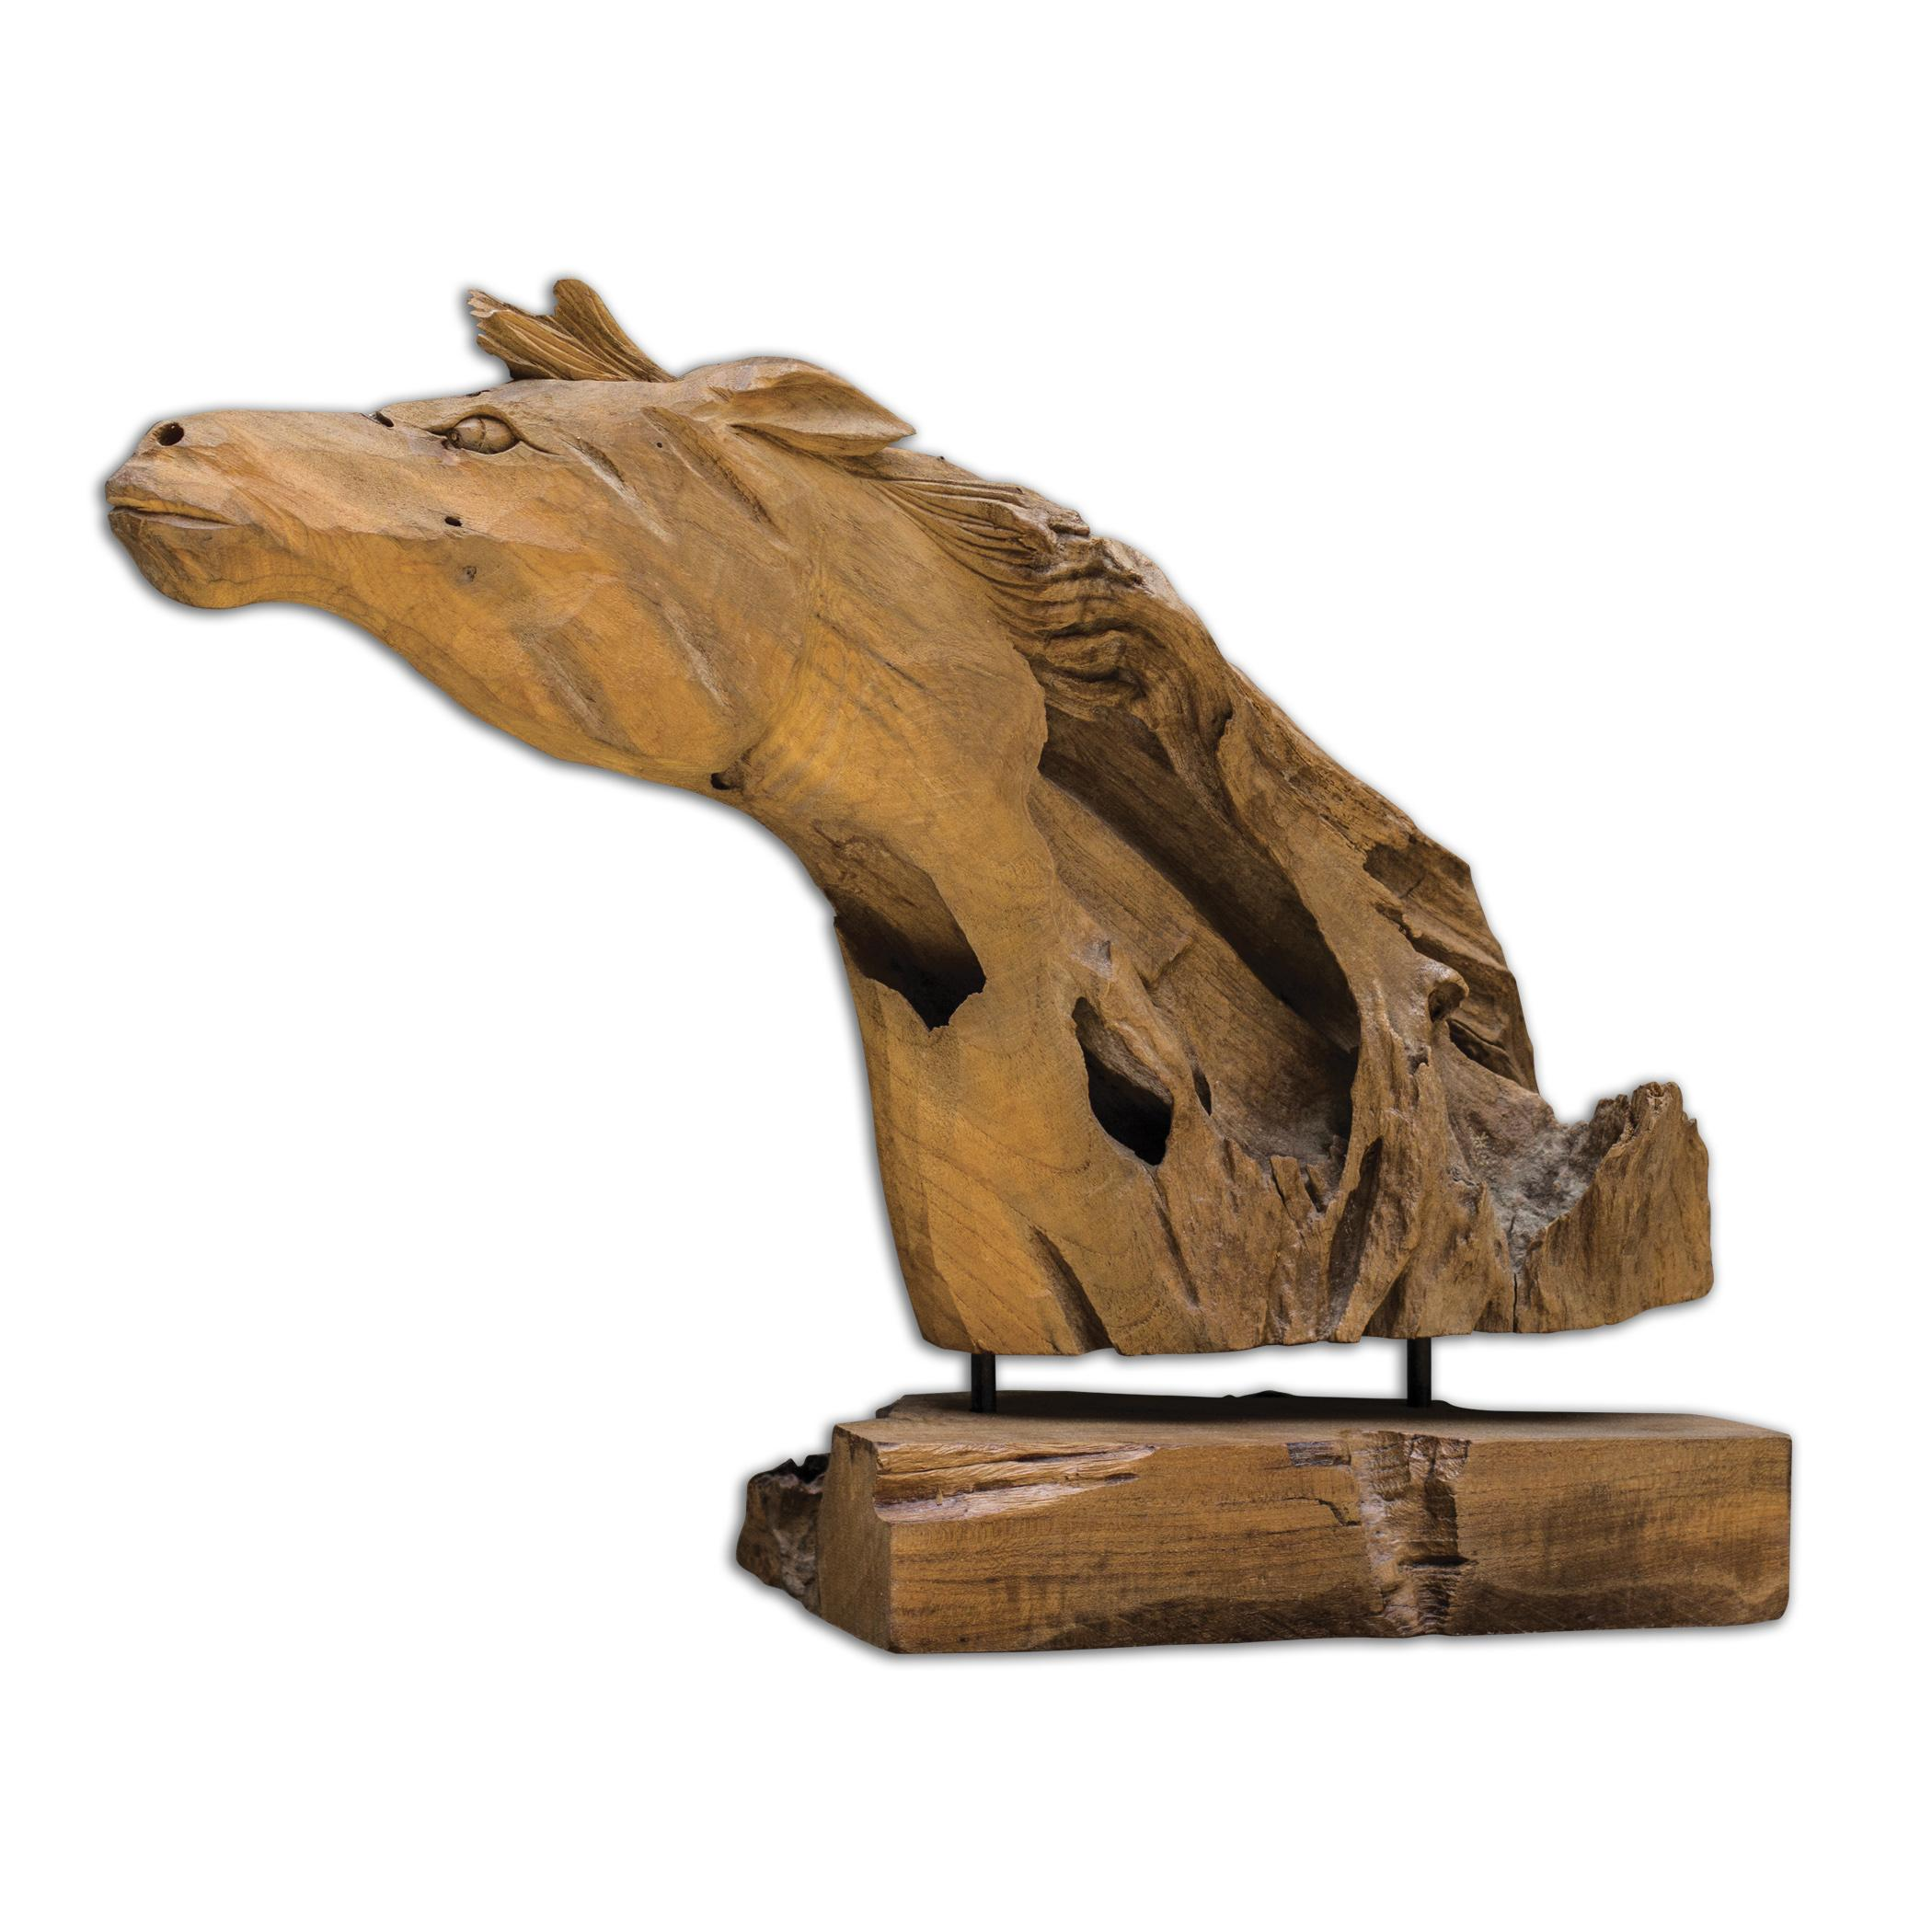 Uttermost Accessories Teak Horse Sculpture - Item Number: 17083